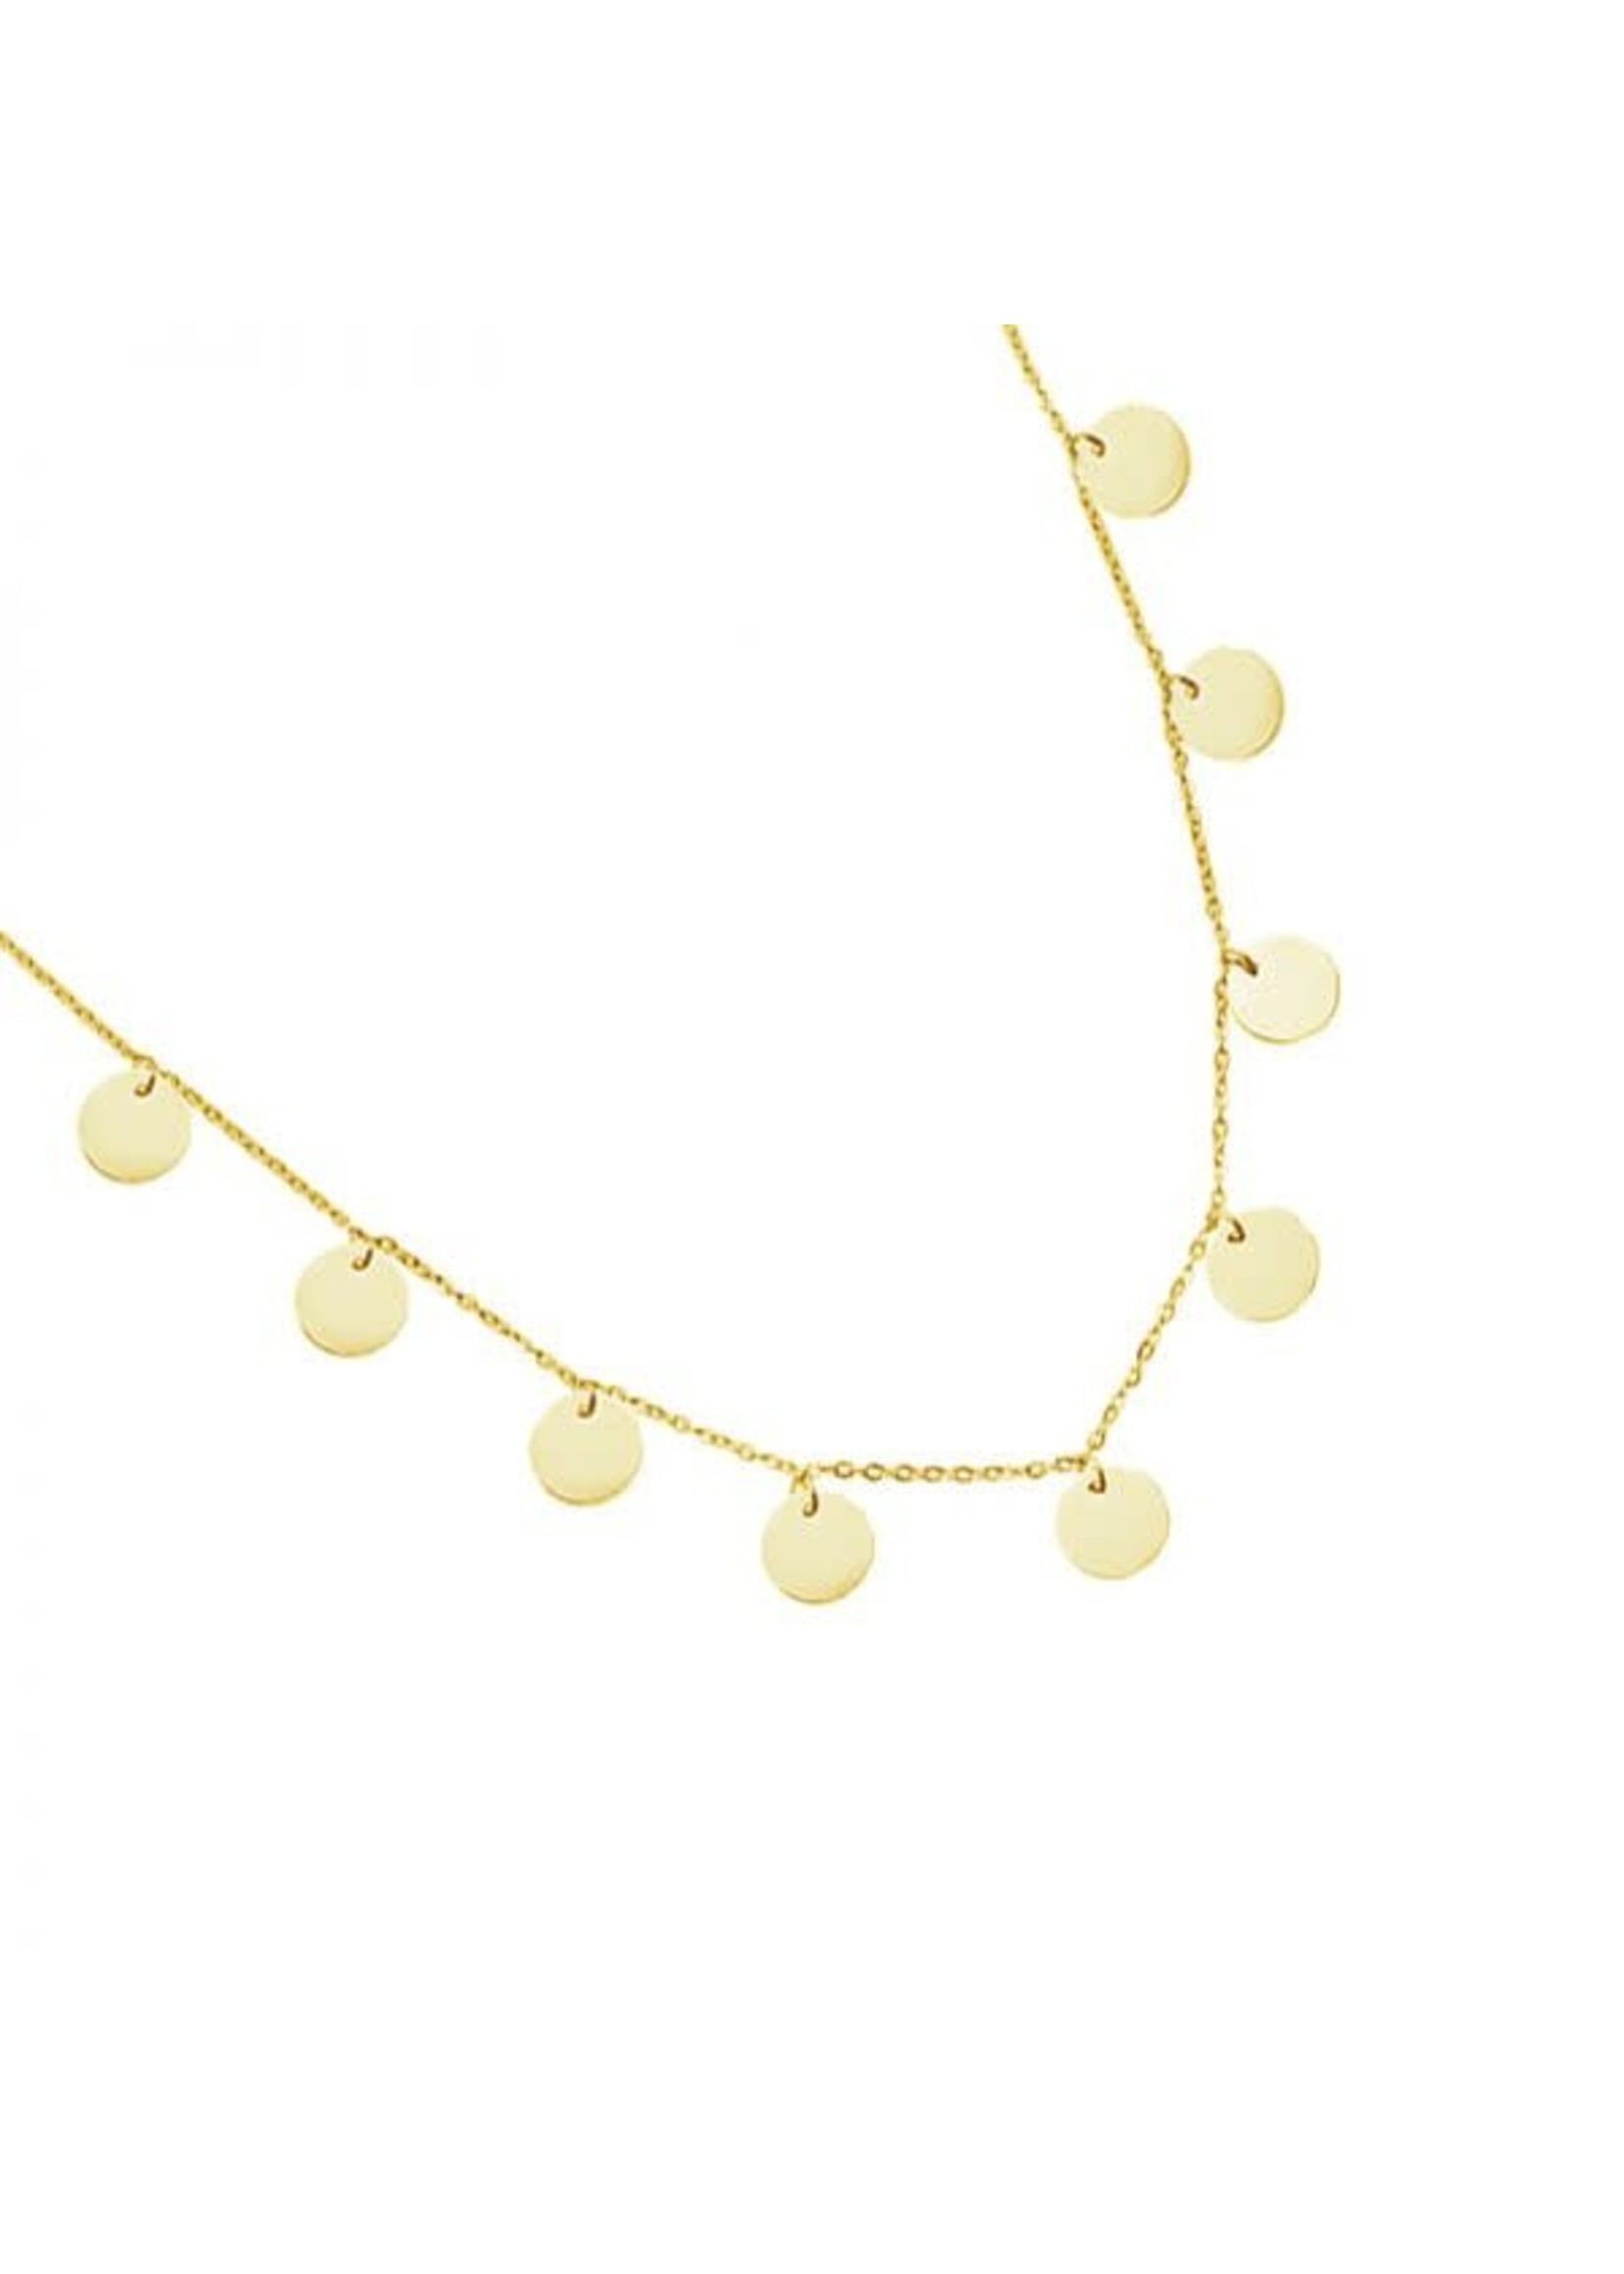 Ladybugs Ketting stainless steel 7 coins GOUD